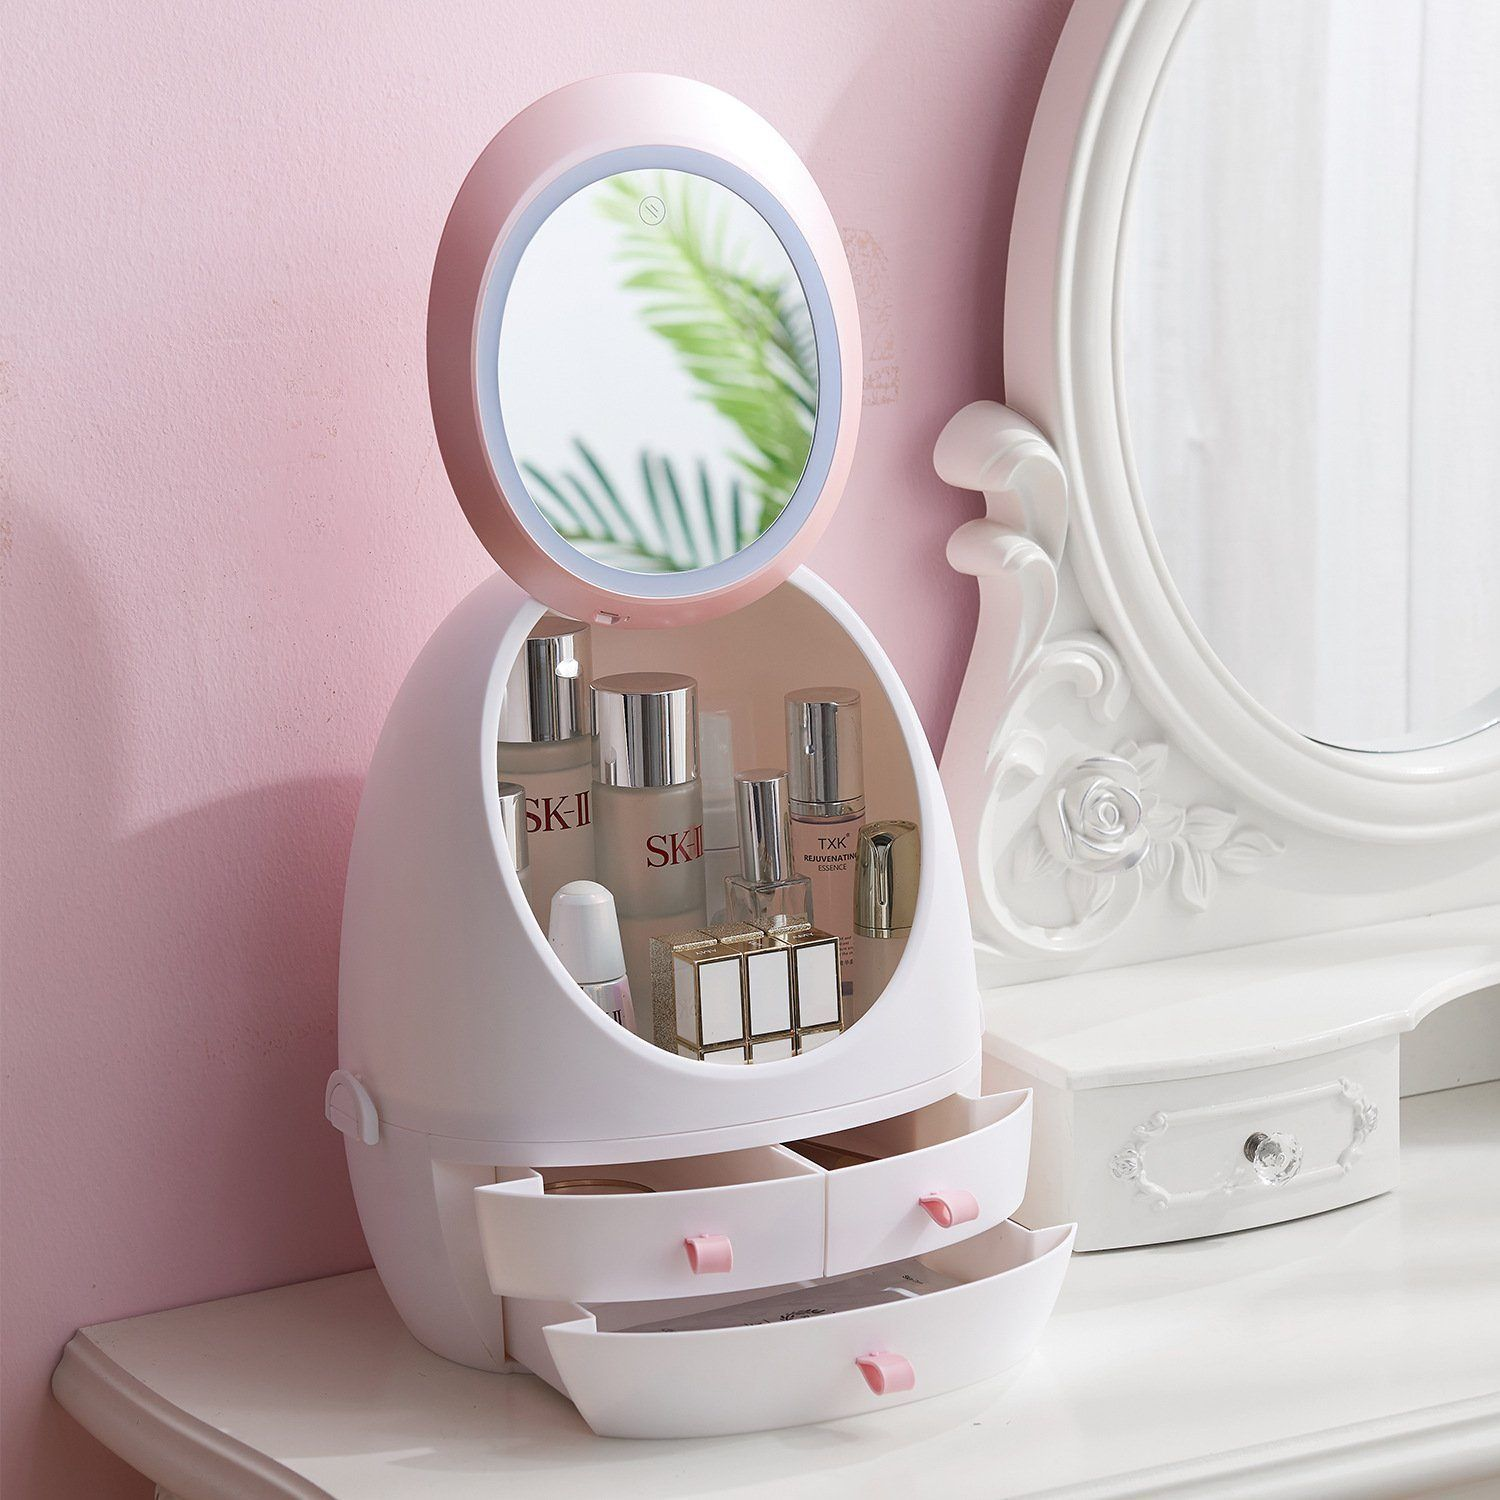 Led Hd Mirror Makeup Storage Box Cosmetic Organizer Case In 2020